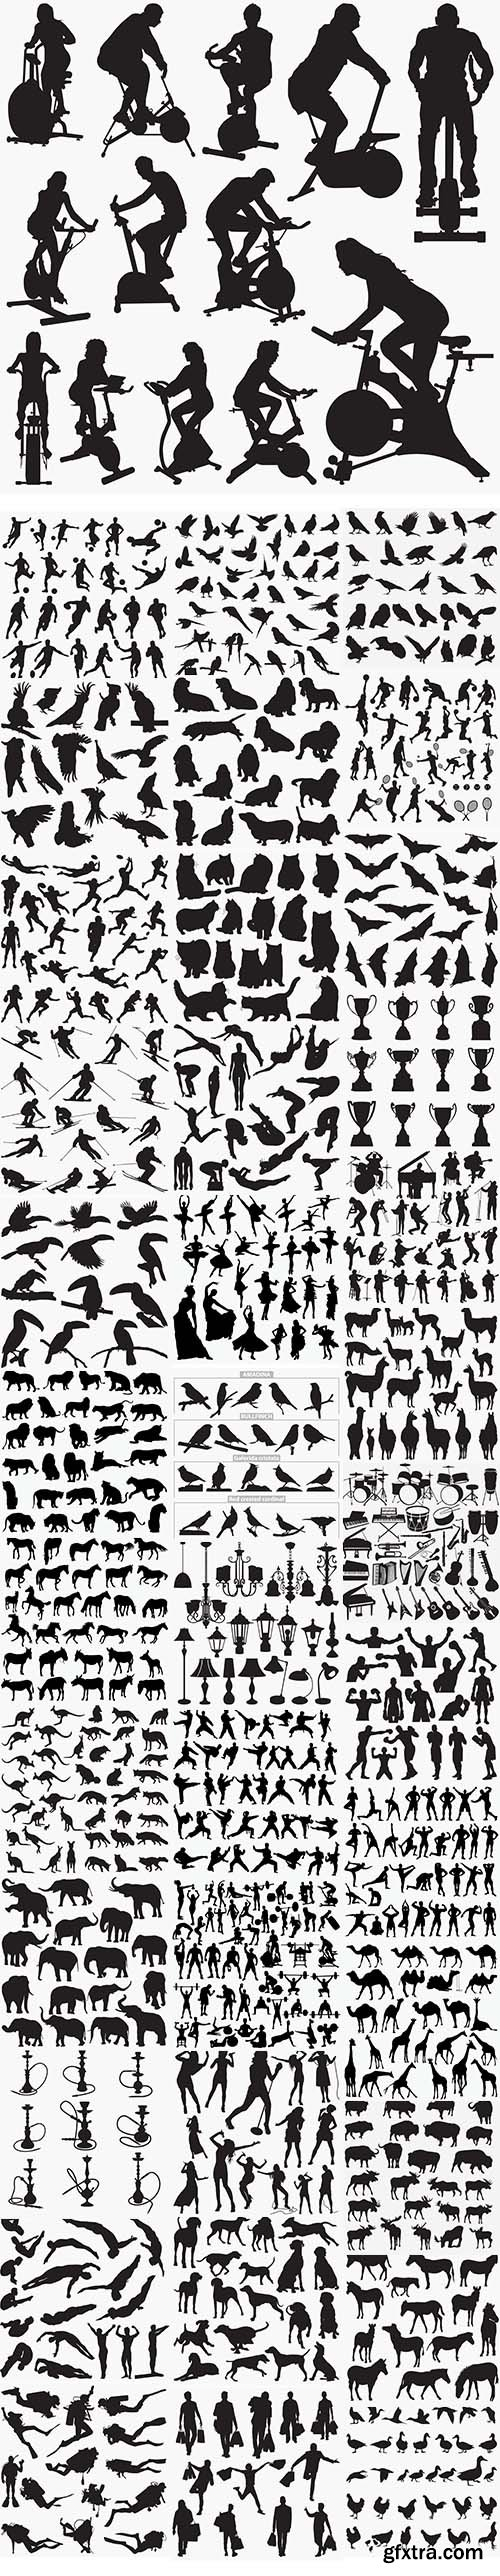 38 Set in 1 Bundle - Vector Black Silhouettes